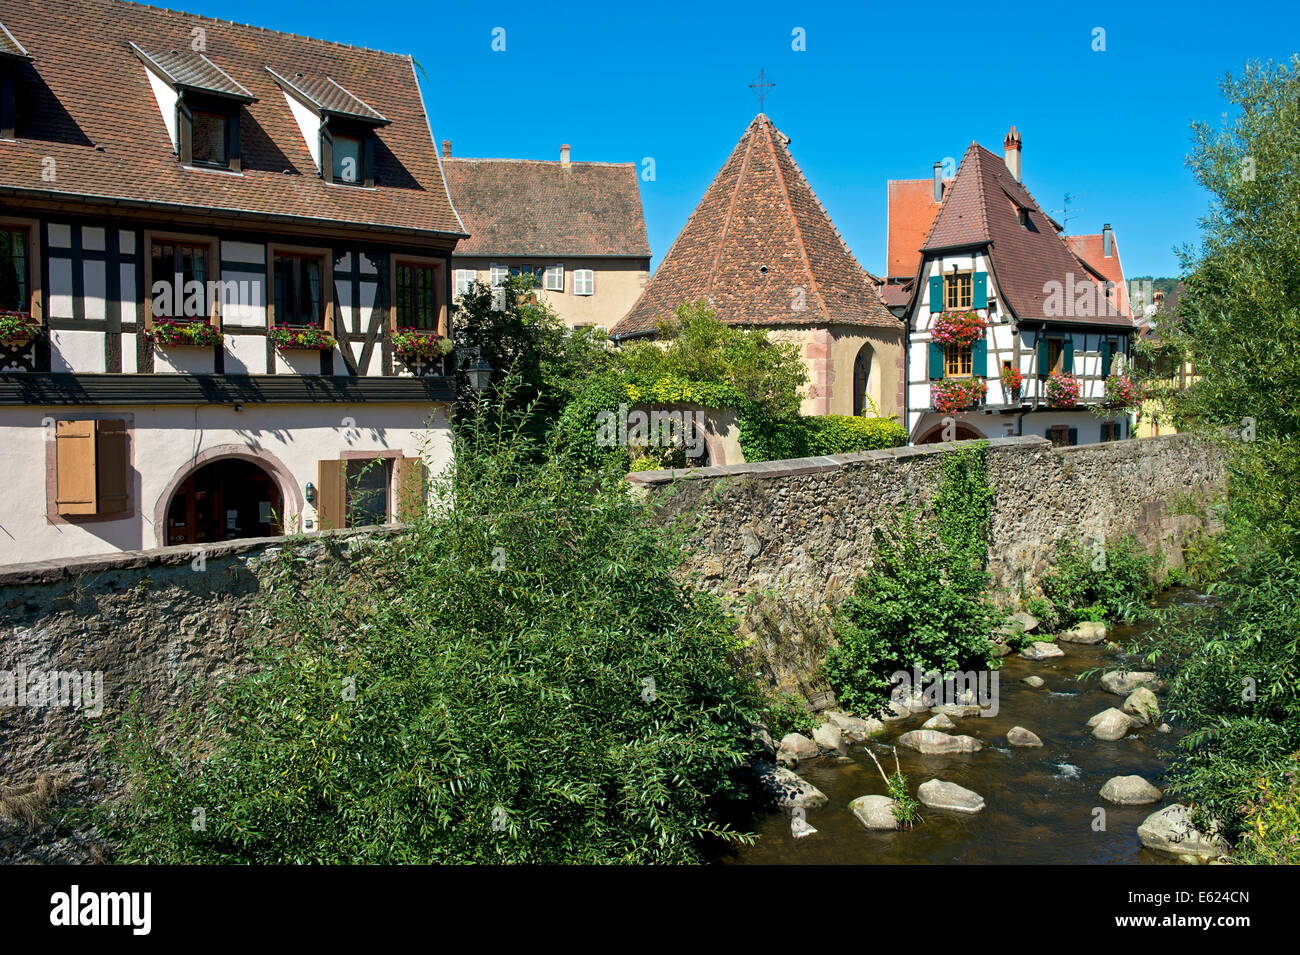 Oberhof Chapel on the Weiss River, Kaysersberg, Alsace, France - Stock Image